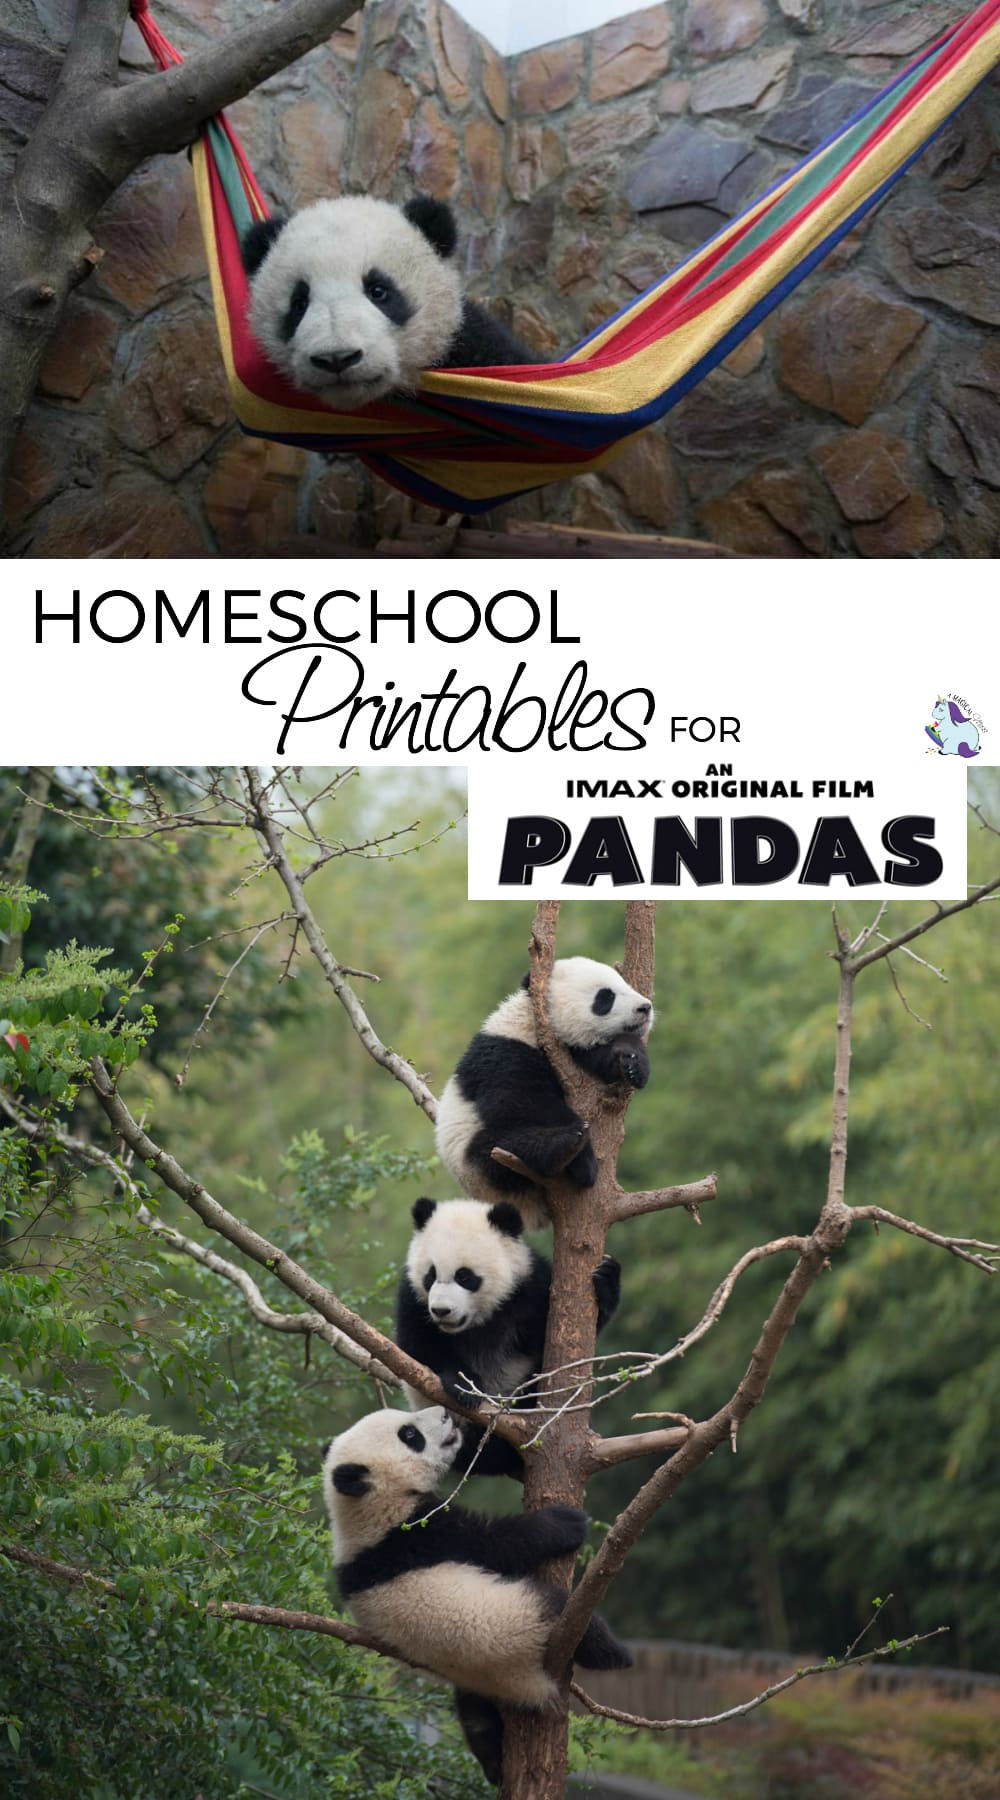 PANDAS Movie Narrated by Kristen Bell #movie #IMAXPandas #homeschool #printables #animals #nature